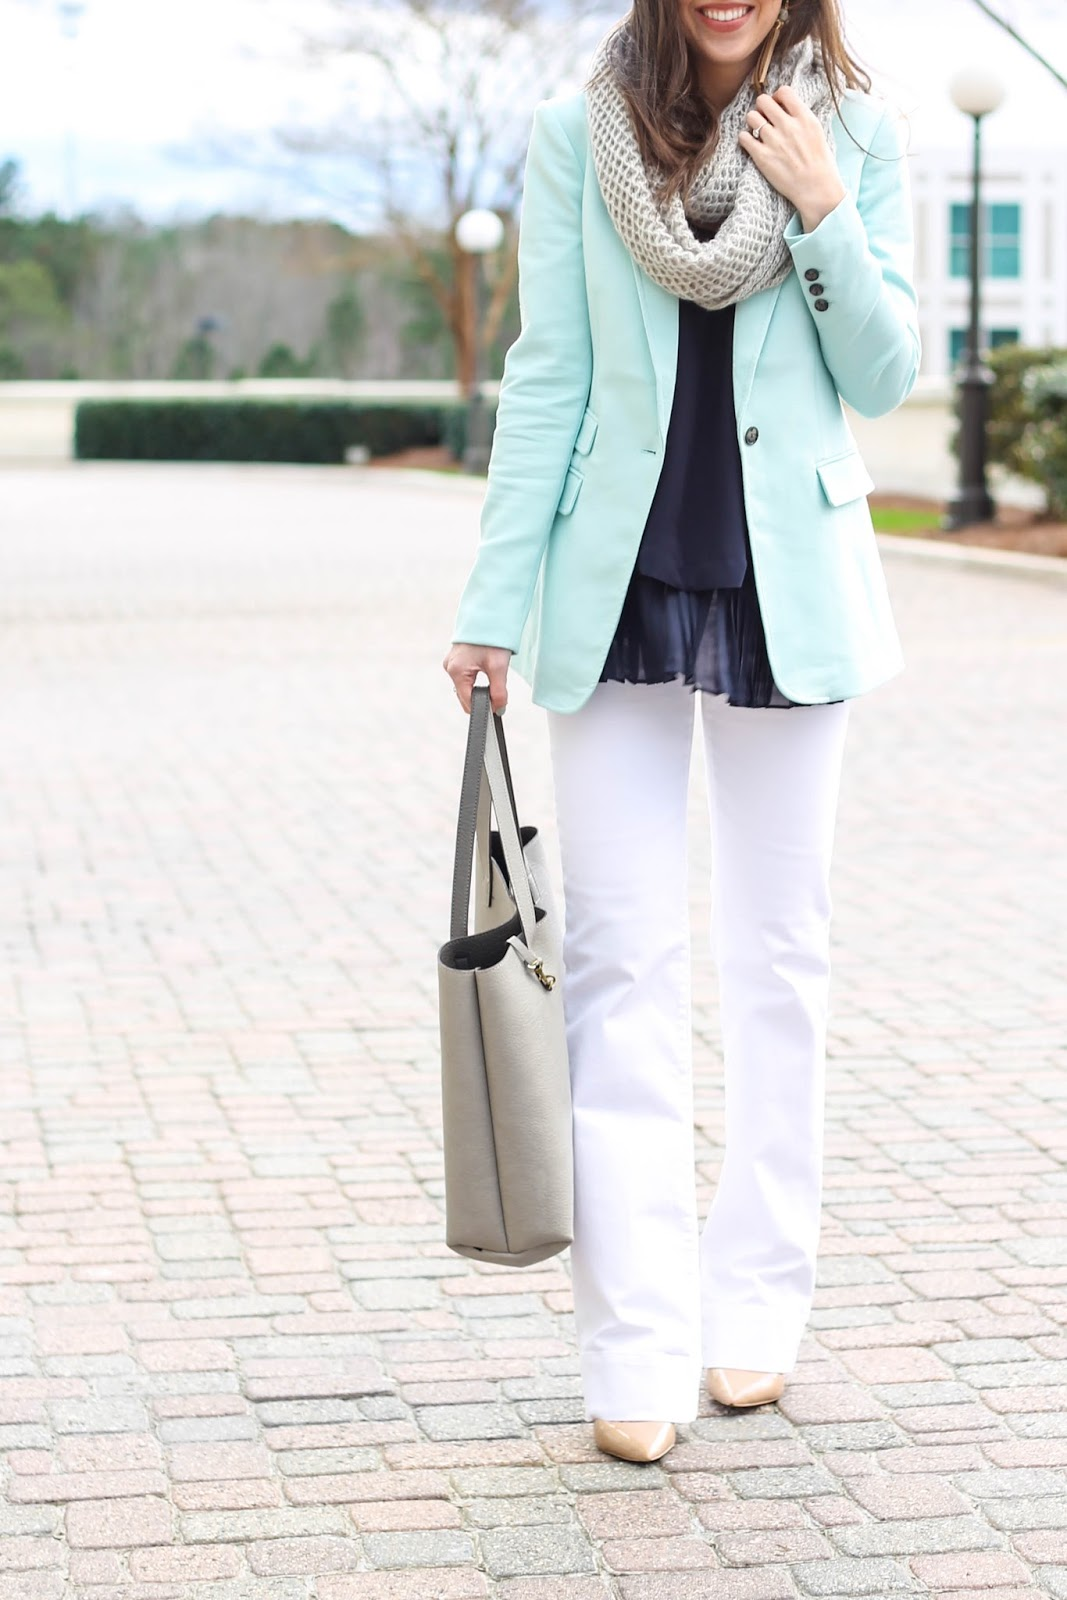 Raven and Riley earrings, Mint Blazer, Banana Republic turquoise blazer, grey knit infinity scarf, white denim wide leg trouser pants, cute winter outfit, winter outfit ideas, work outfit, cute work appropriate outfit, business casual outfit ideas, fashion blogger, north carolina blogger, pretty in the pines blog, LOFT wide leg white pants, 2016 trends, pastel blazer